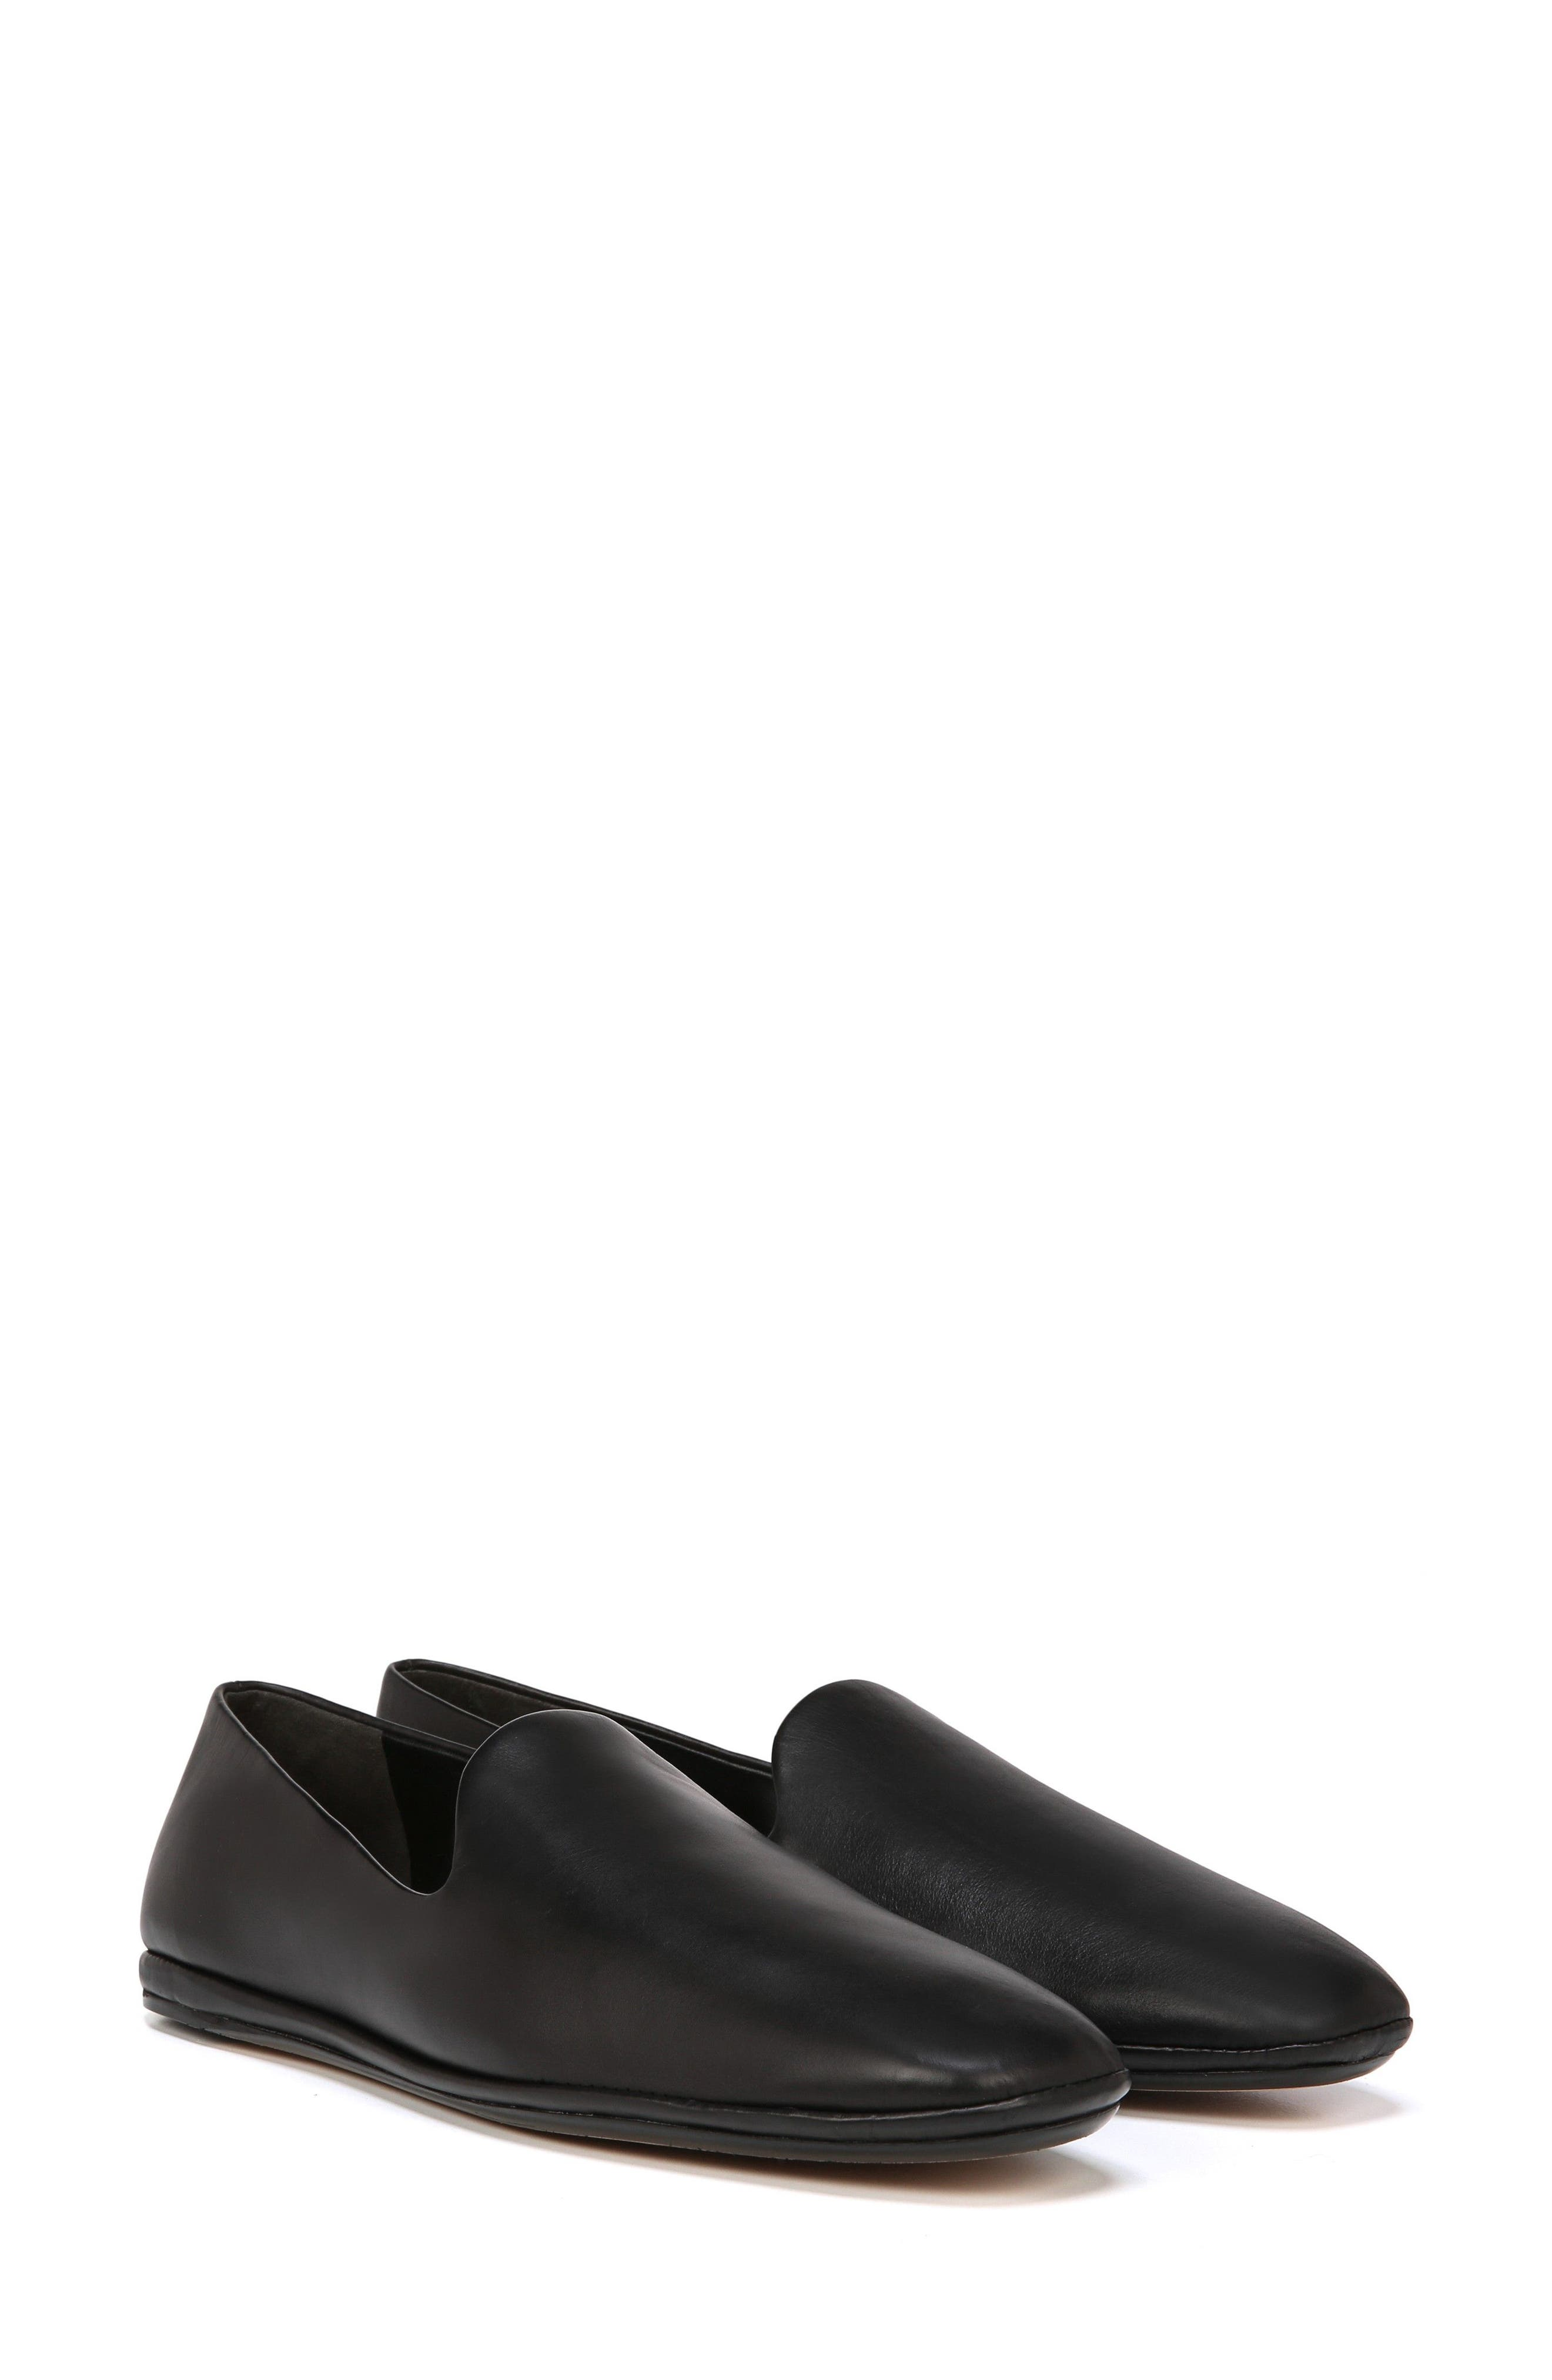 Paz Venetian Loafer,                             Alternate thumbnail 6, color,                             BLACK